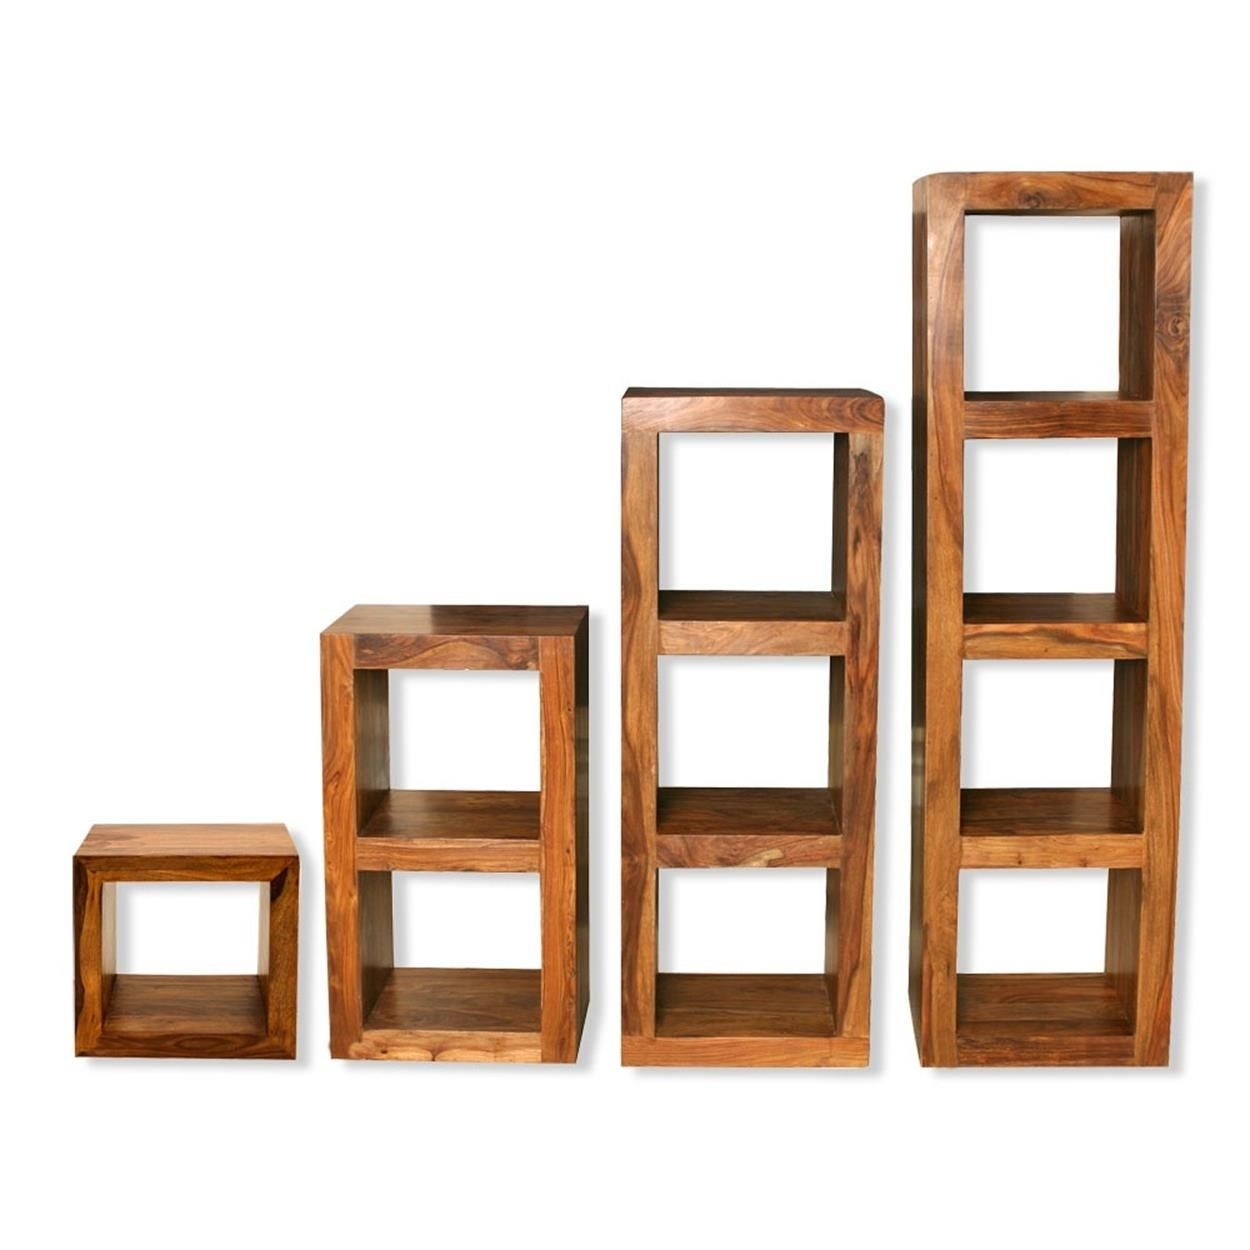 Cube shelving units solid sheesham wood